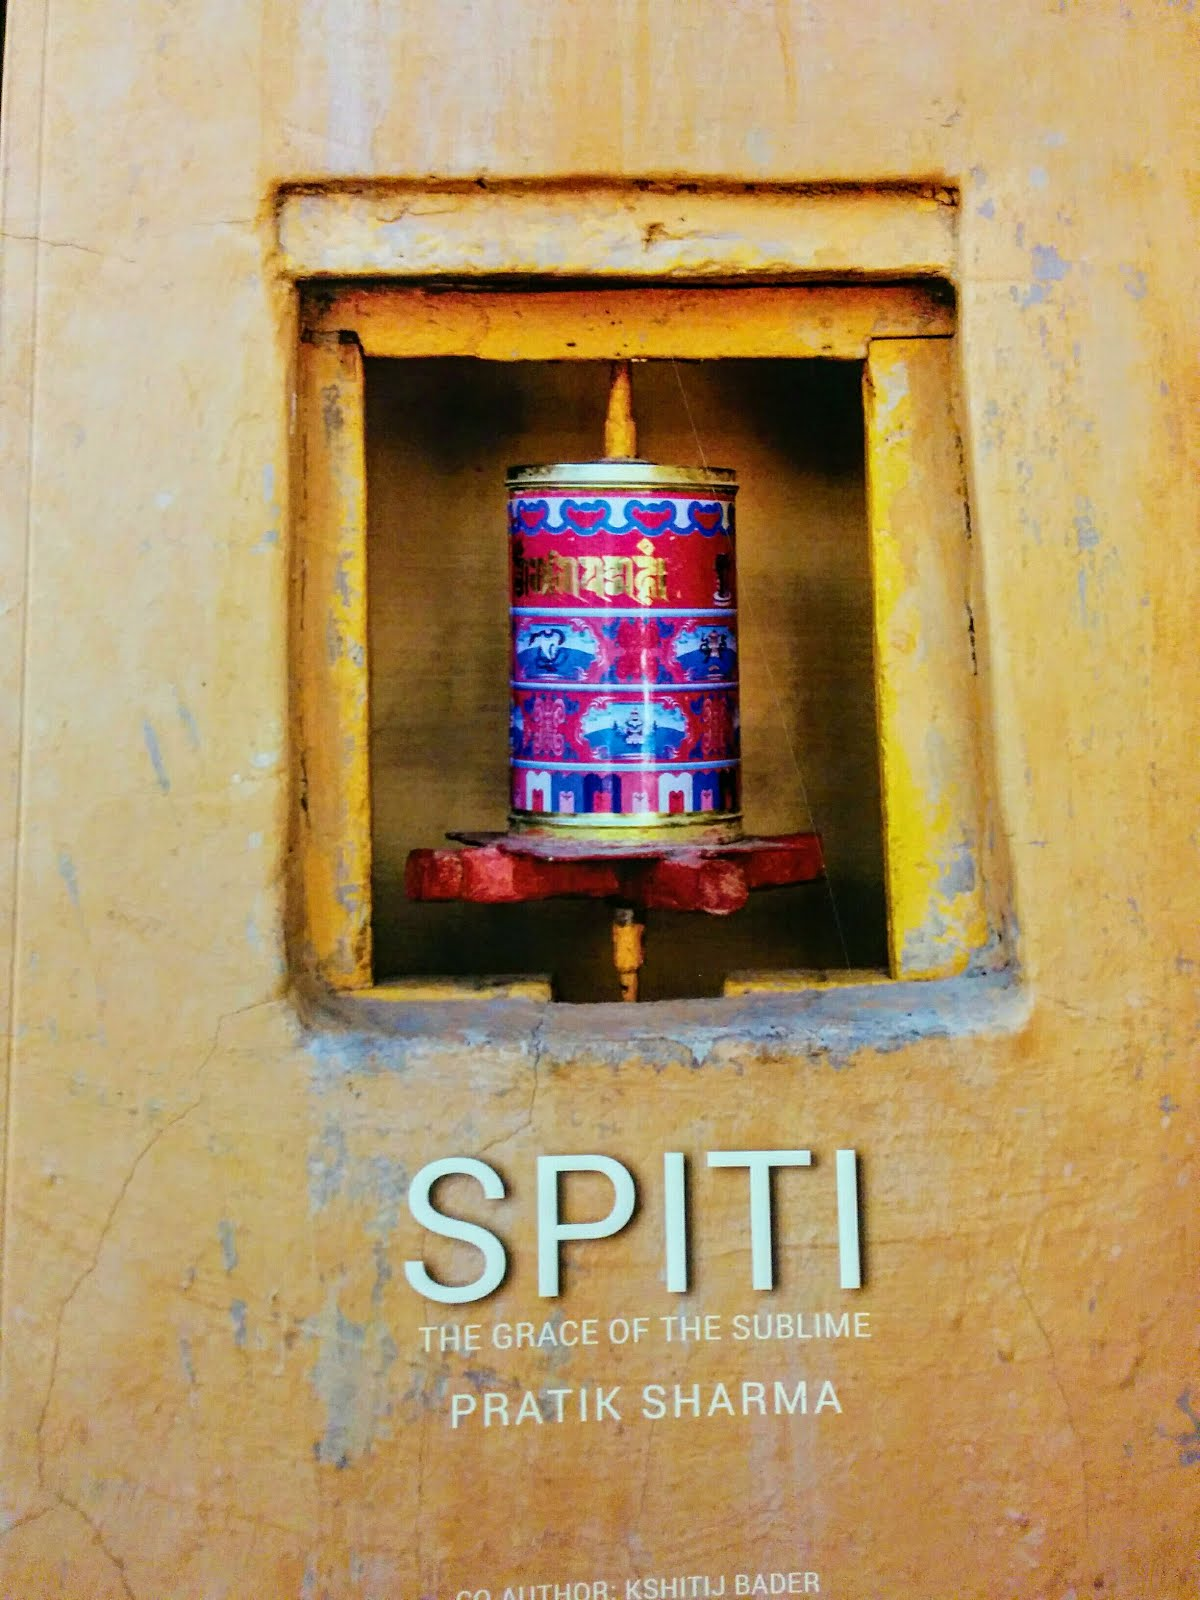 Vibrant Coffee Table Book on Spiti